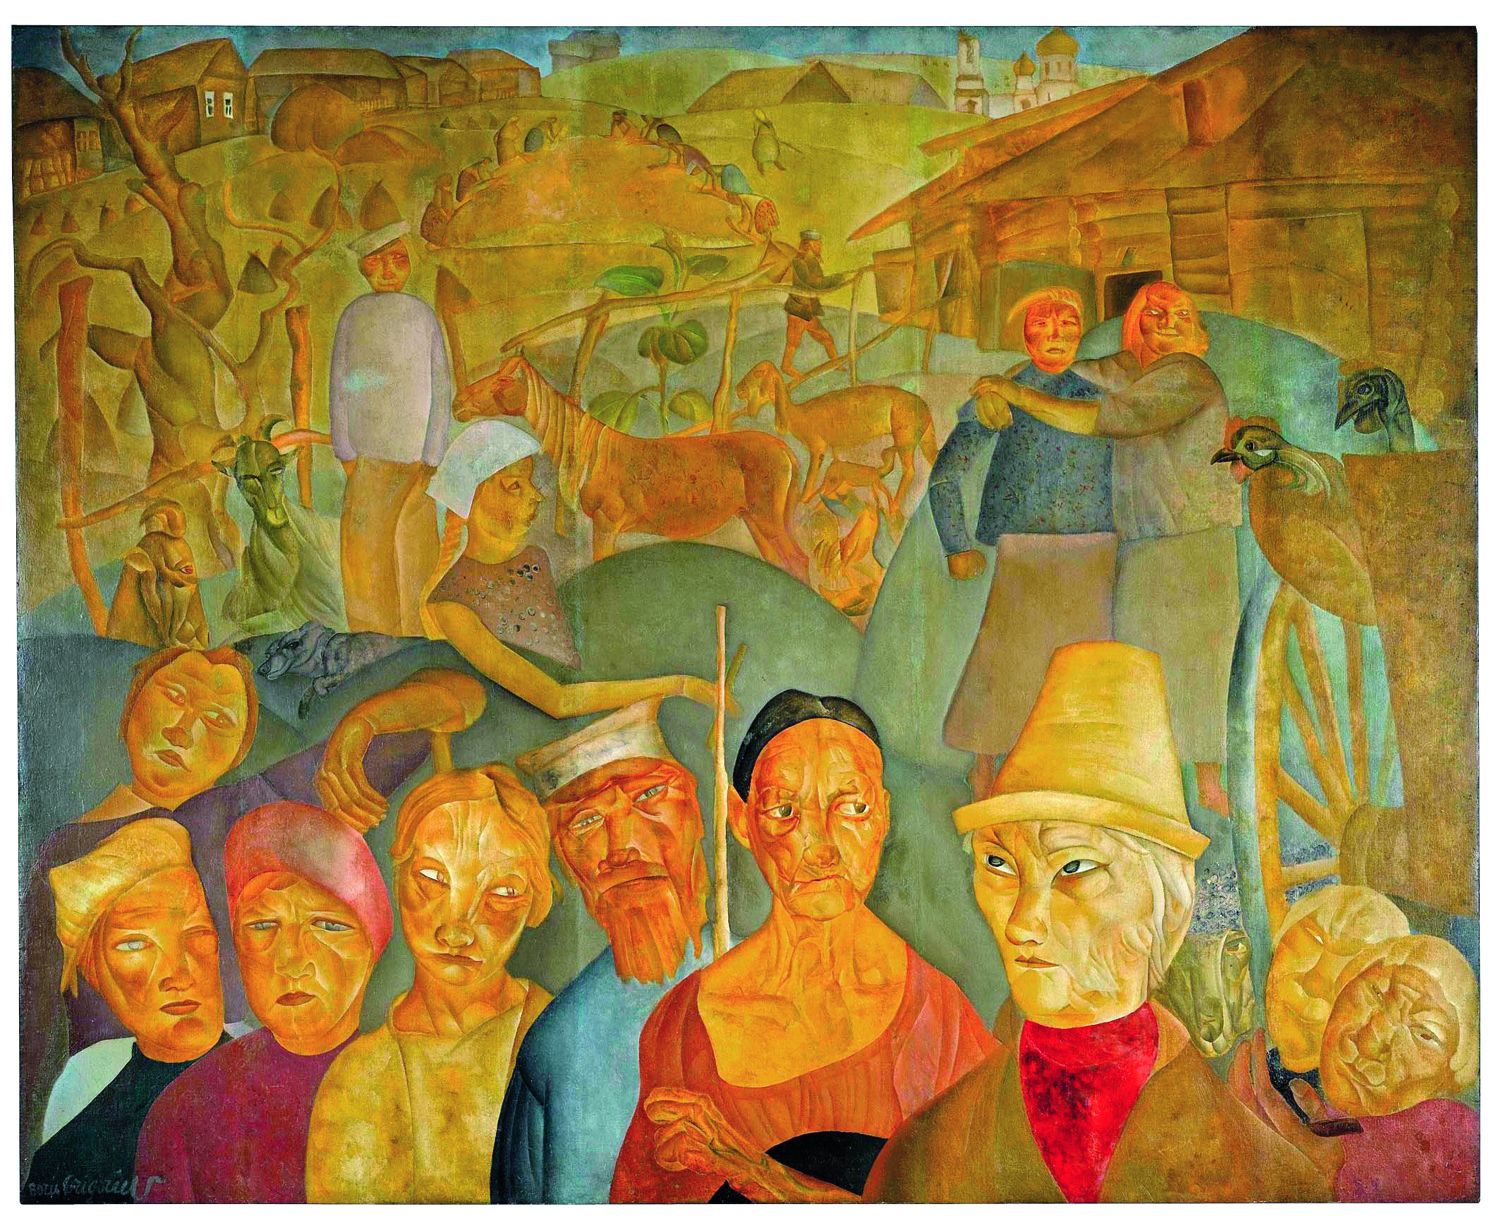 SOTHEBY'S LONDON - SEPTEMBER 18-19, 2007THE ROSTROPOVICH-VISHNEVSKAYA COLLECTION OF RUSSIAN ARTLOT 424 BORIS DMITRIEVICH GRIGORIEV, 1886-1939FACES OF RUSSIA1,500,000�2,000,000 GBP